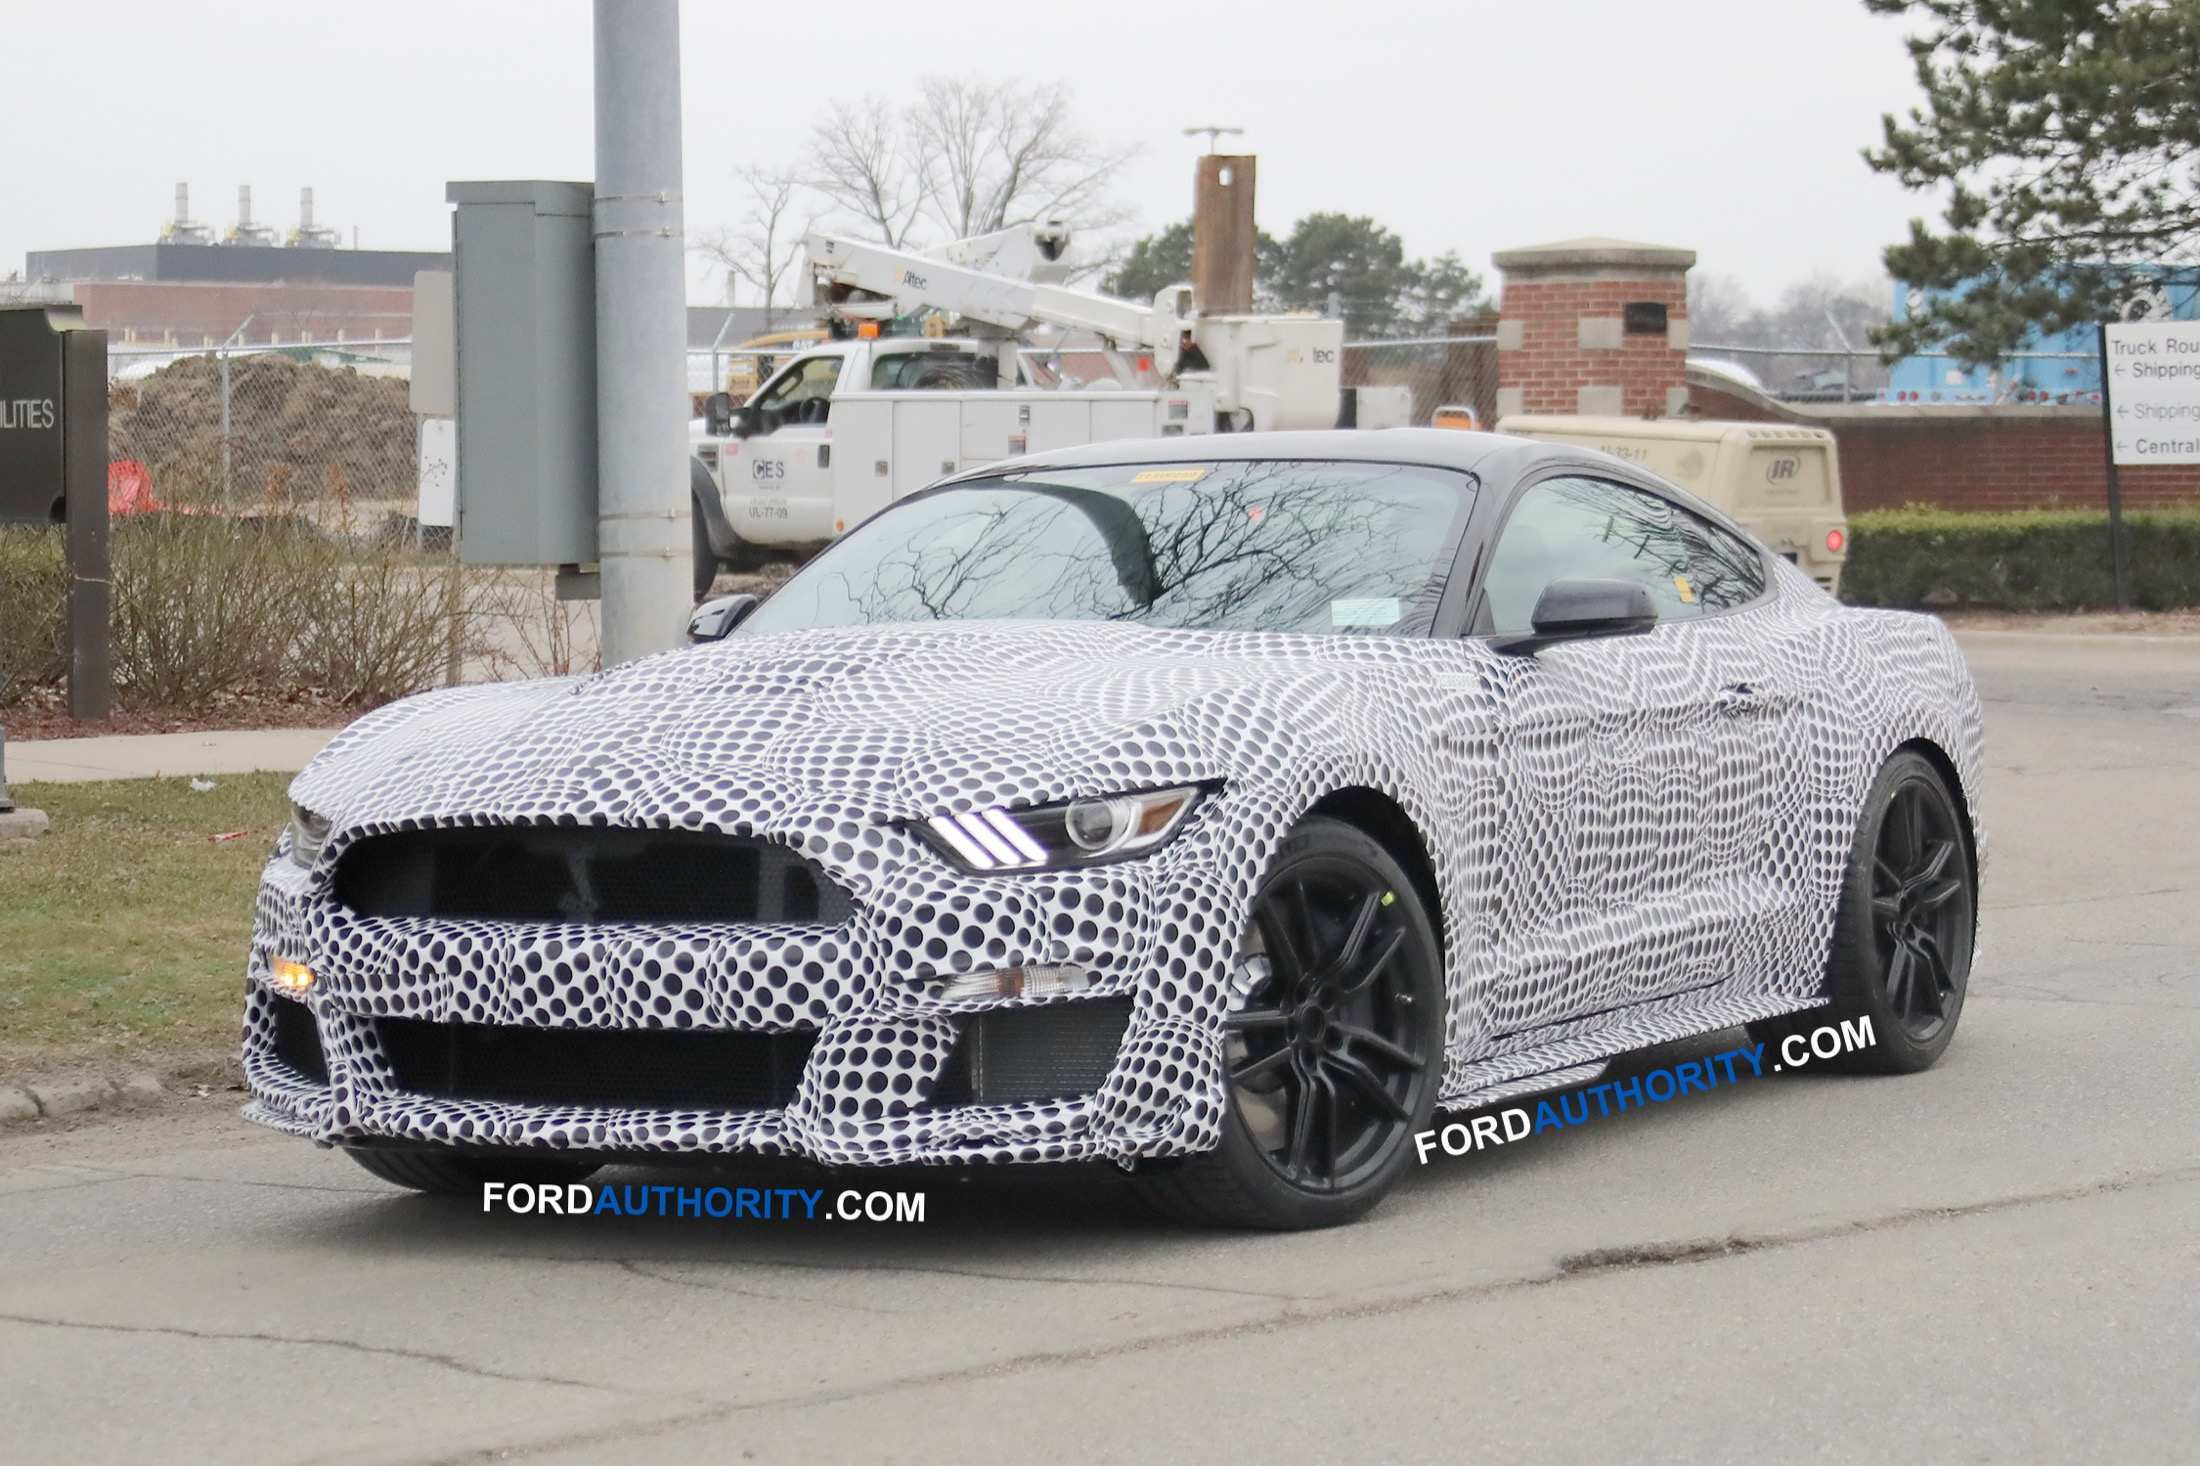 82 Best Review 2020 Ford Mustang Images Exterior and Interior by 2020 Ford Mustang Images